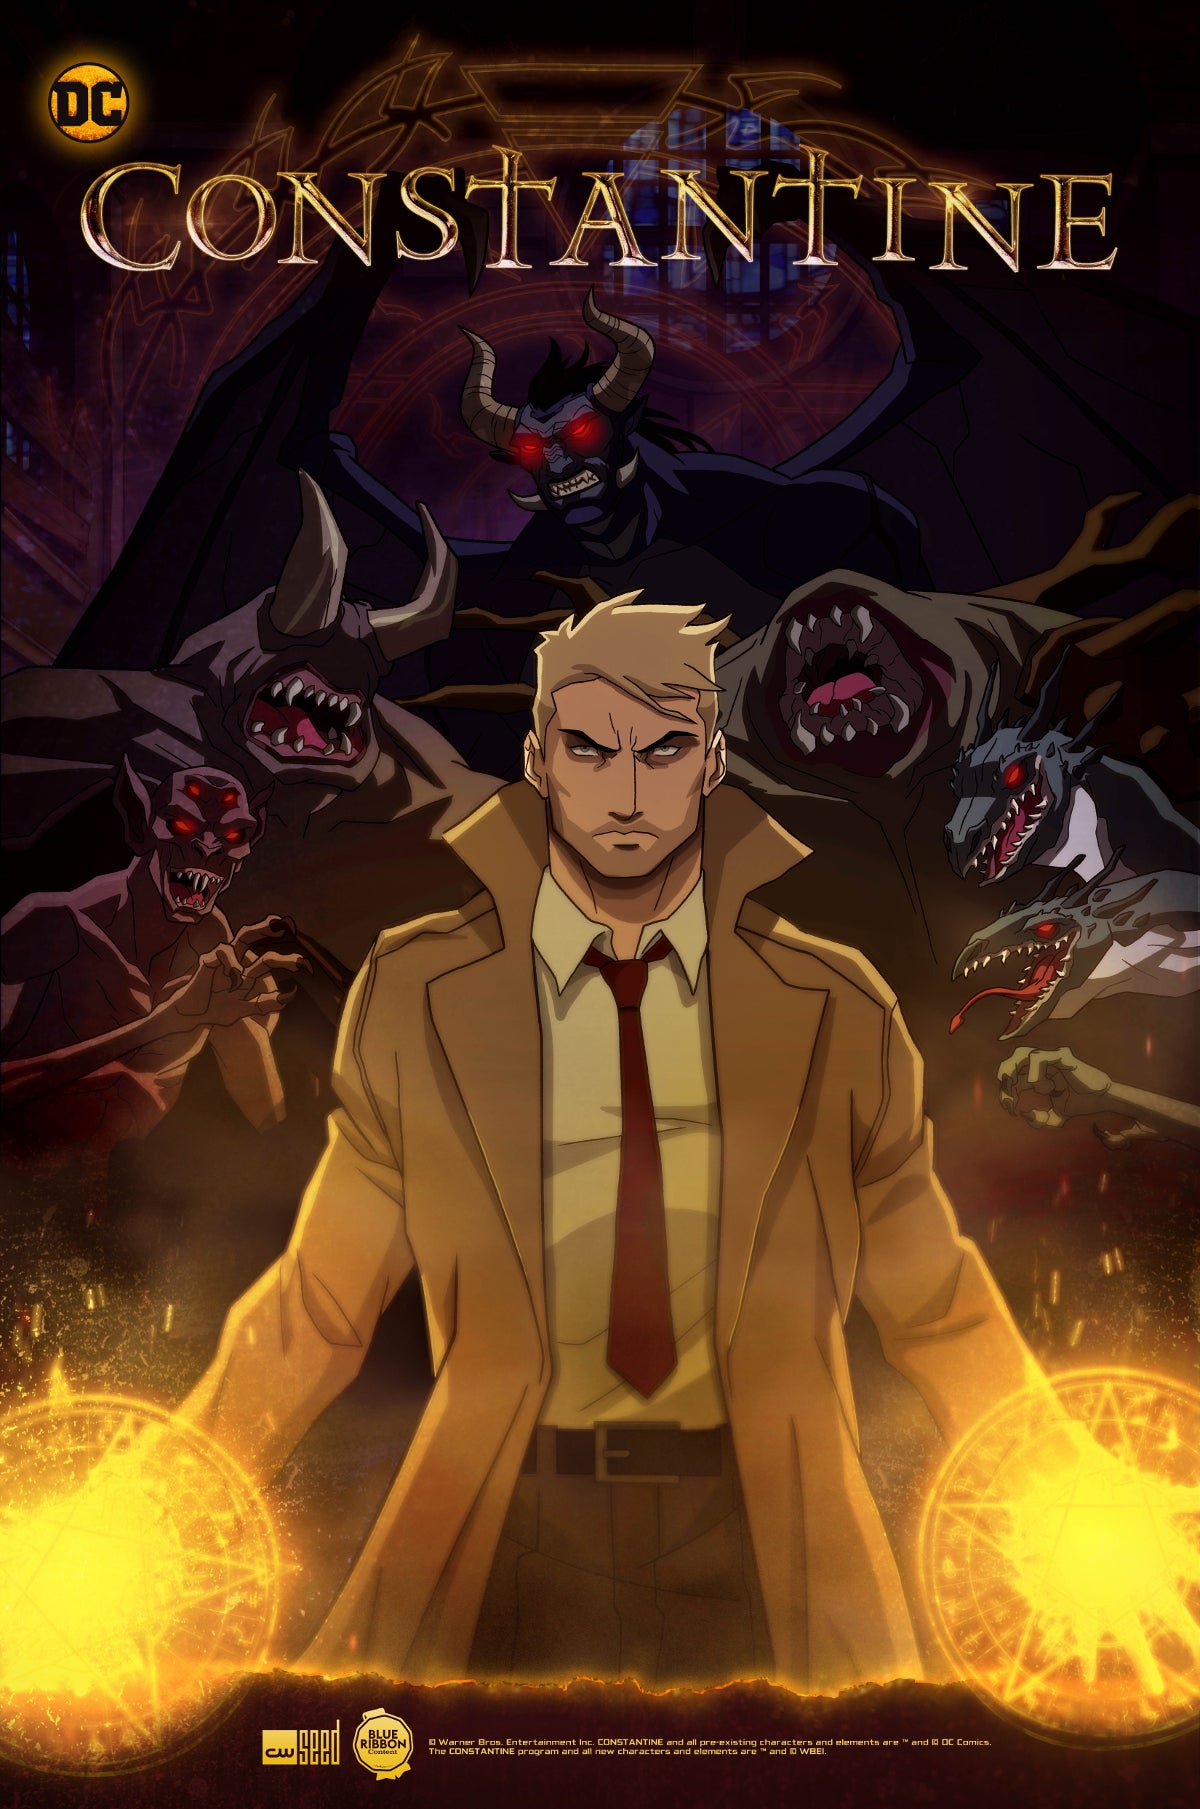 Constantine Animated Series Poster Artwork CW Seed